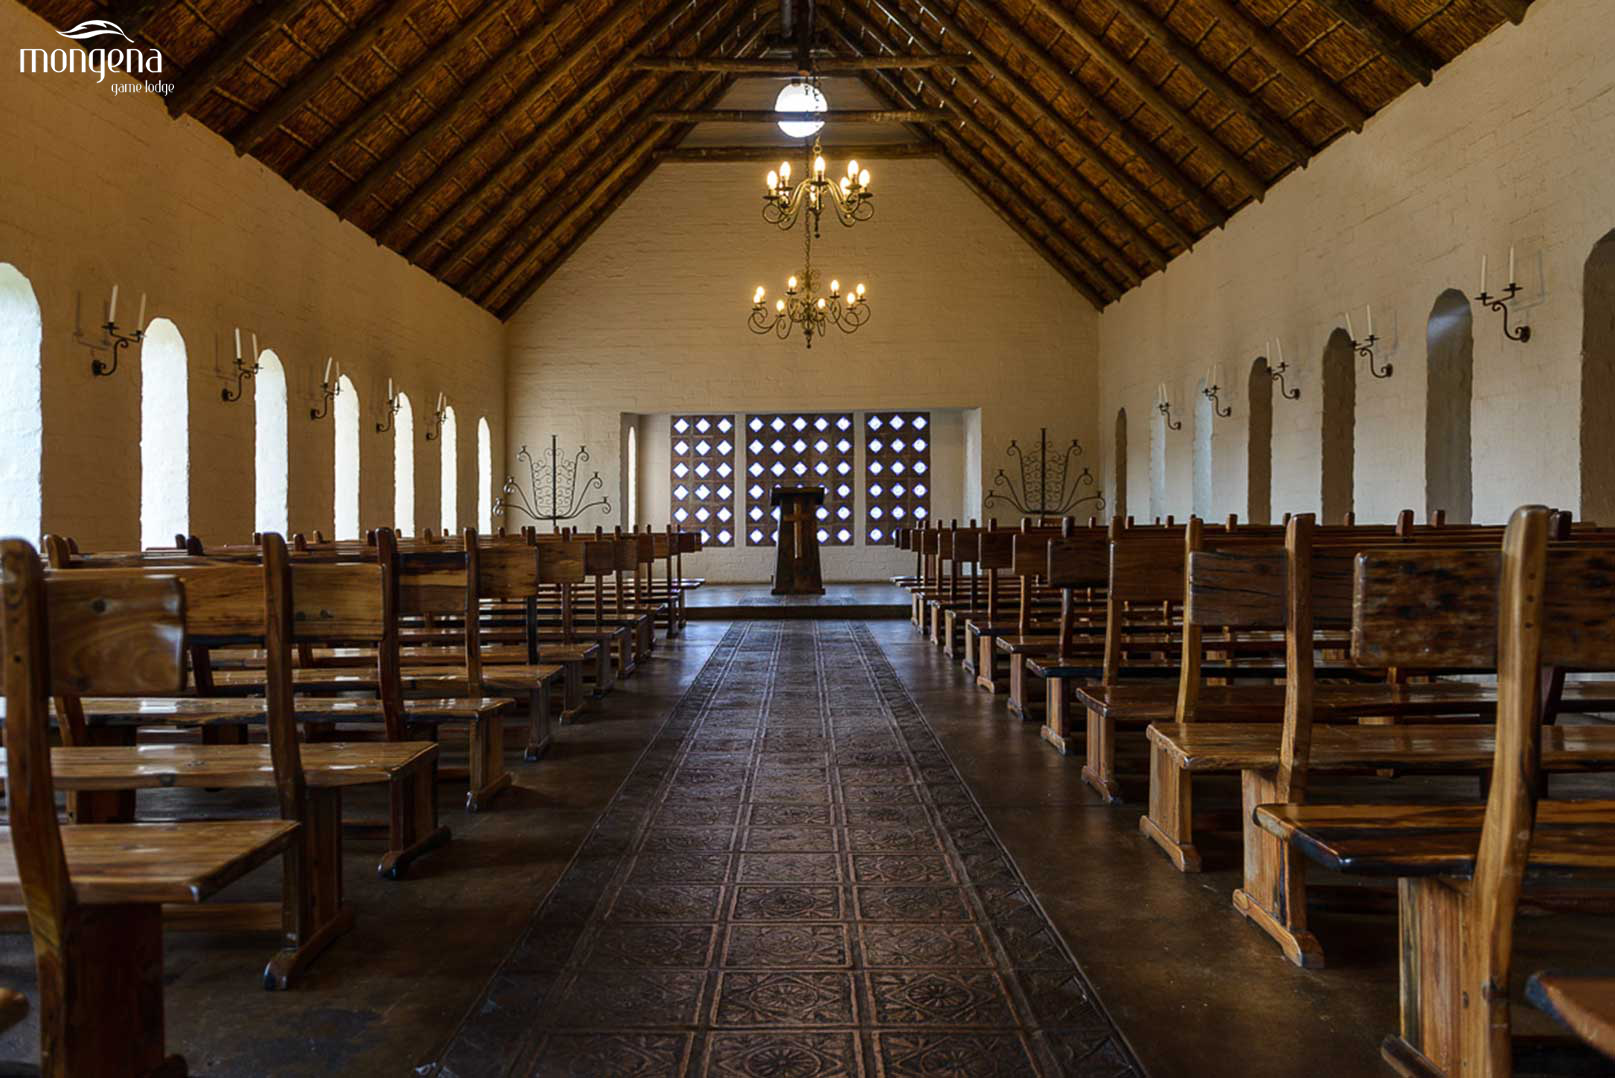 Wedding Chapel Venue Near Johannesburg - Mongena Game Lodge